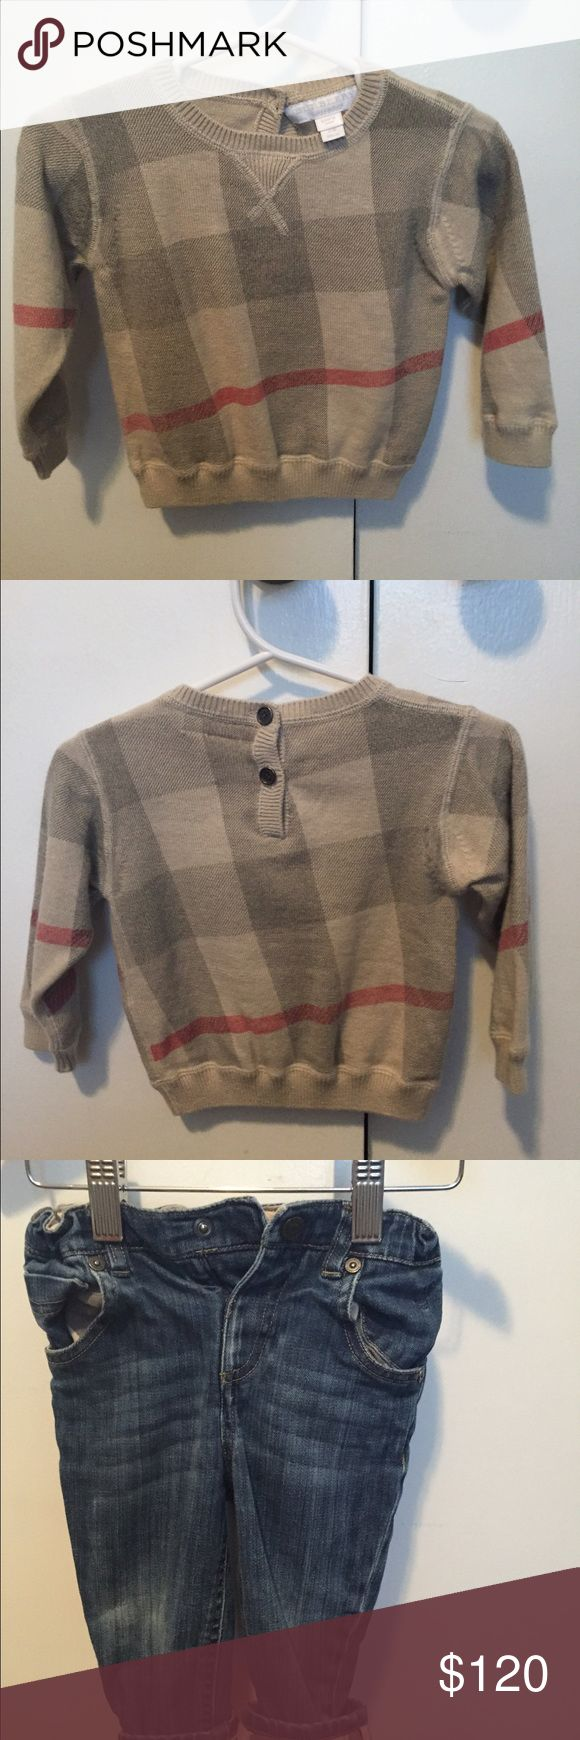 Final price drop! Burberry sweater and jeans Classic boys Burberry sweater and jeans. Jeans worn just a few times and has some wear and tear on knees from crawling infant. Sweater worn once or twice and has no flaws. Burberry Matching Sets